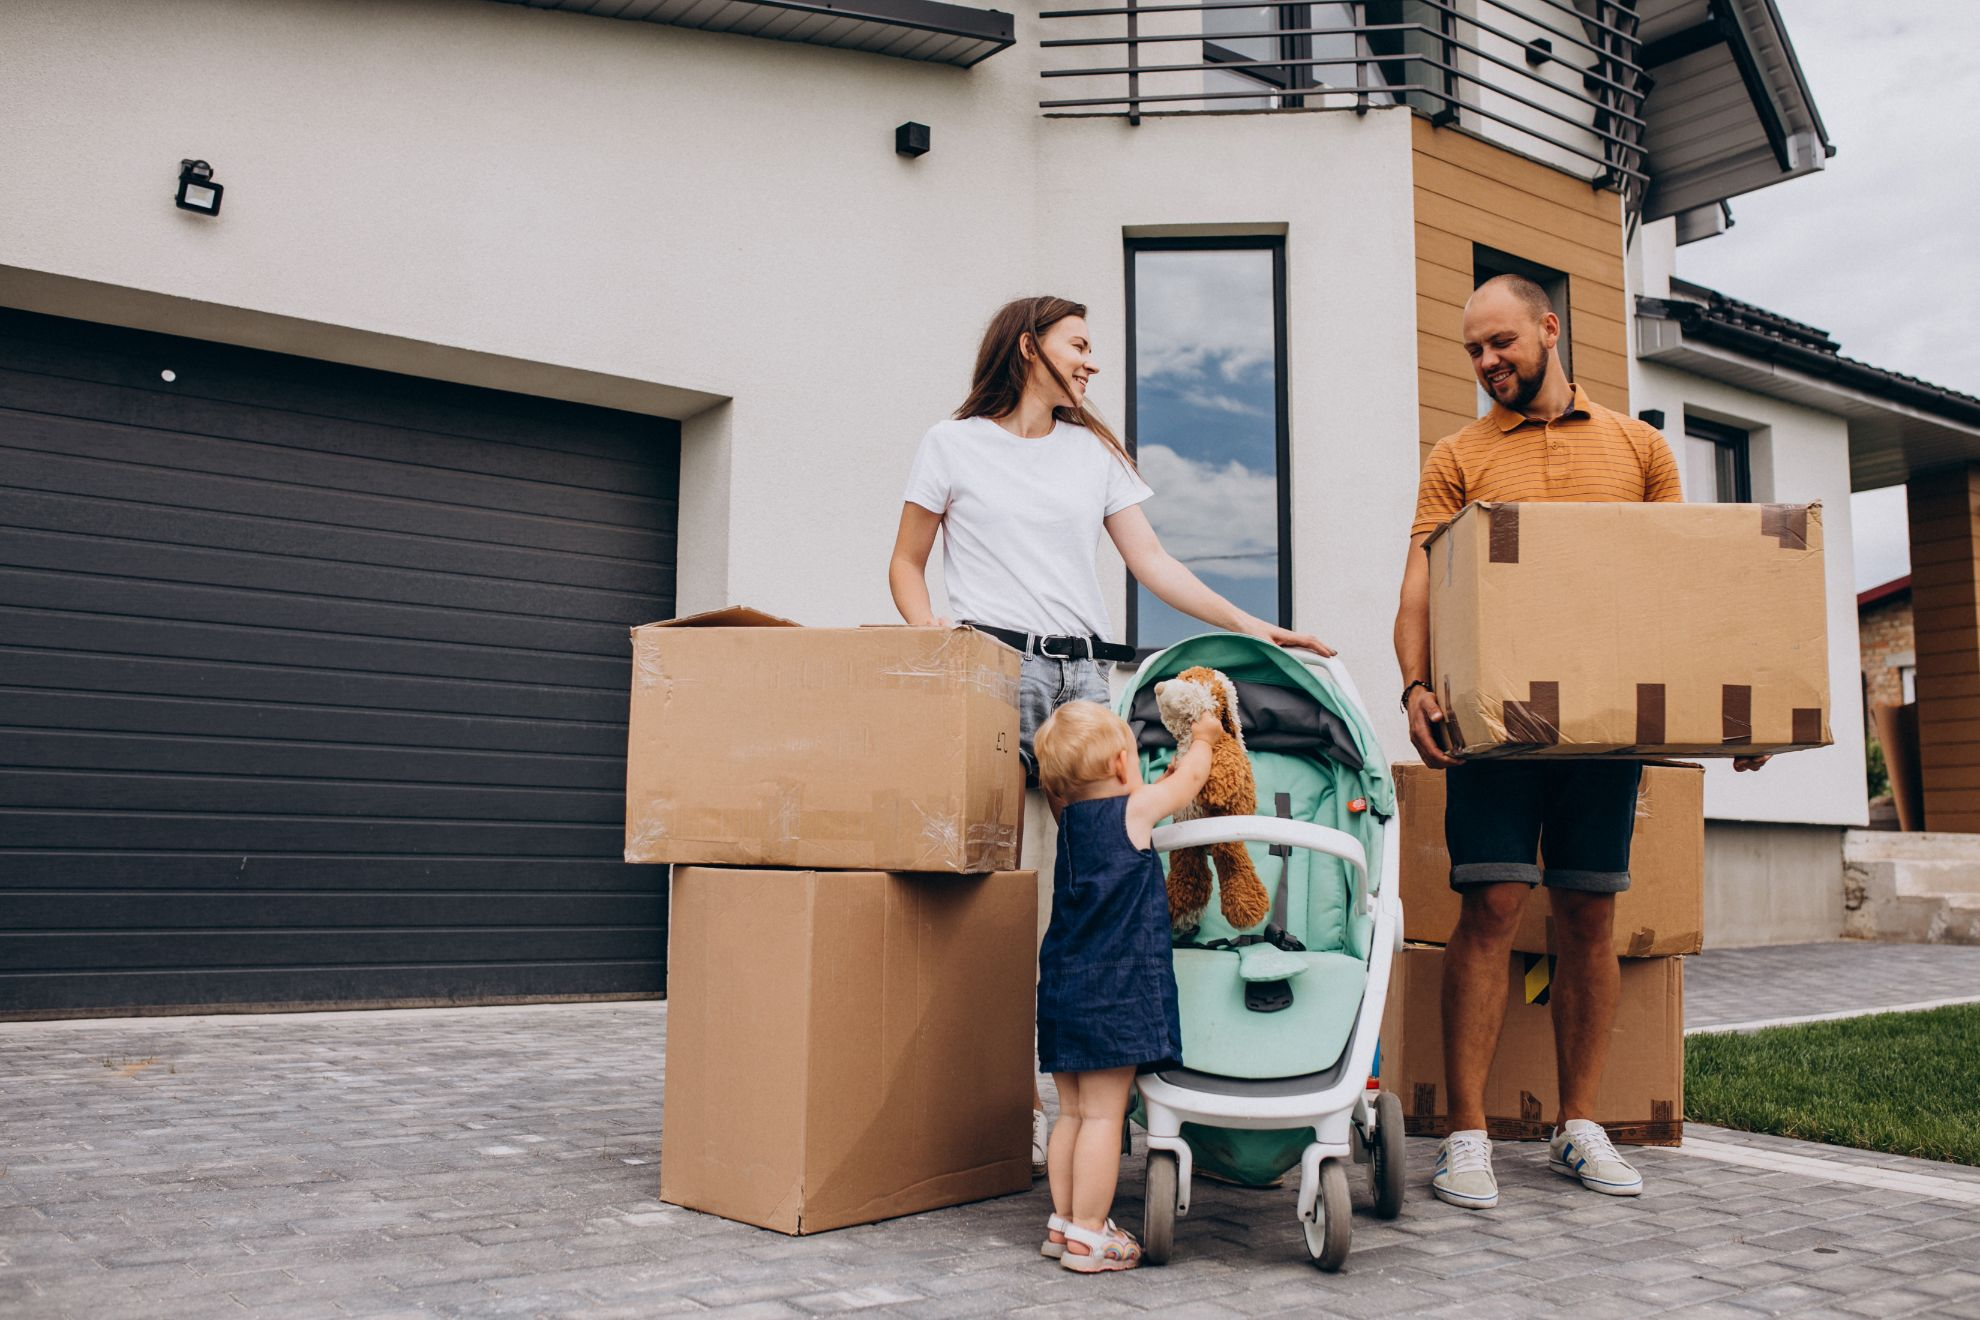 Complete Moving Overseas Checklist: What to Do Before You Move